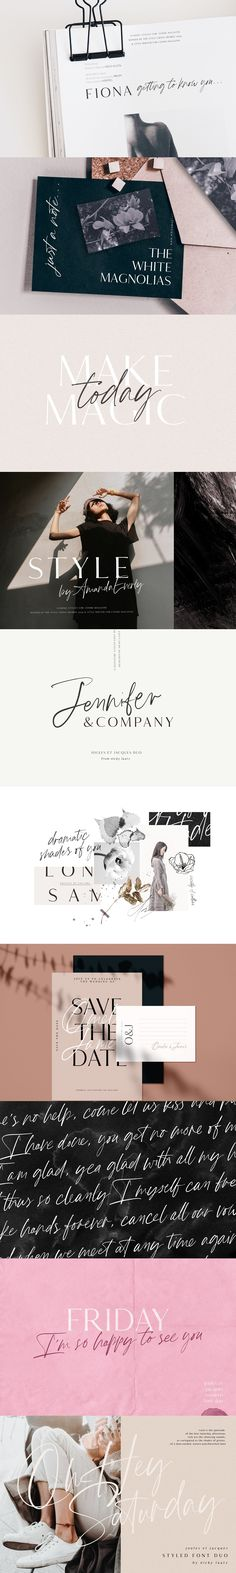 Joules et Jacques Font Duo Modern Fonts, Joules, Cool Fonts, Serif, Textured Background, Spice Things Up, Your Design, Card Templates, Business